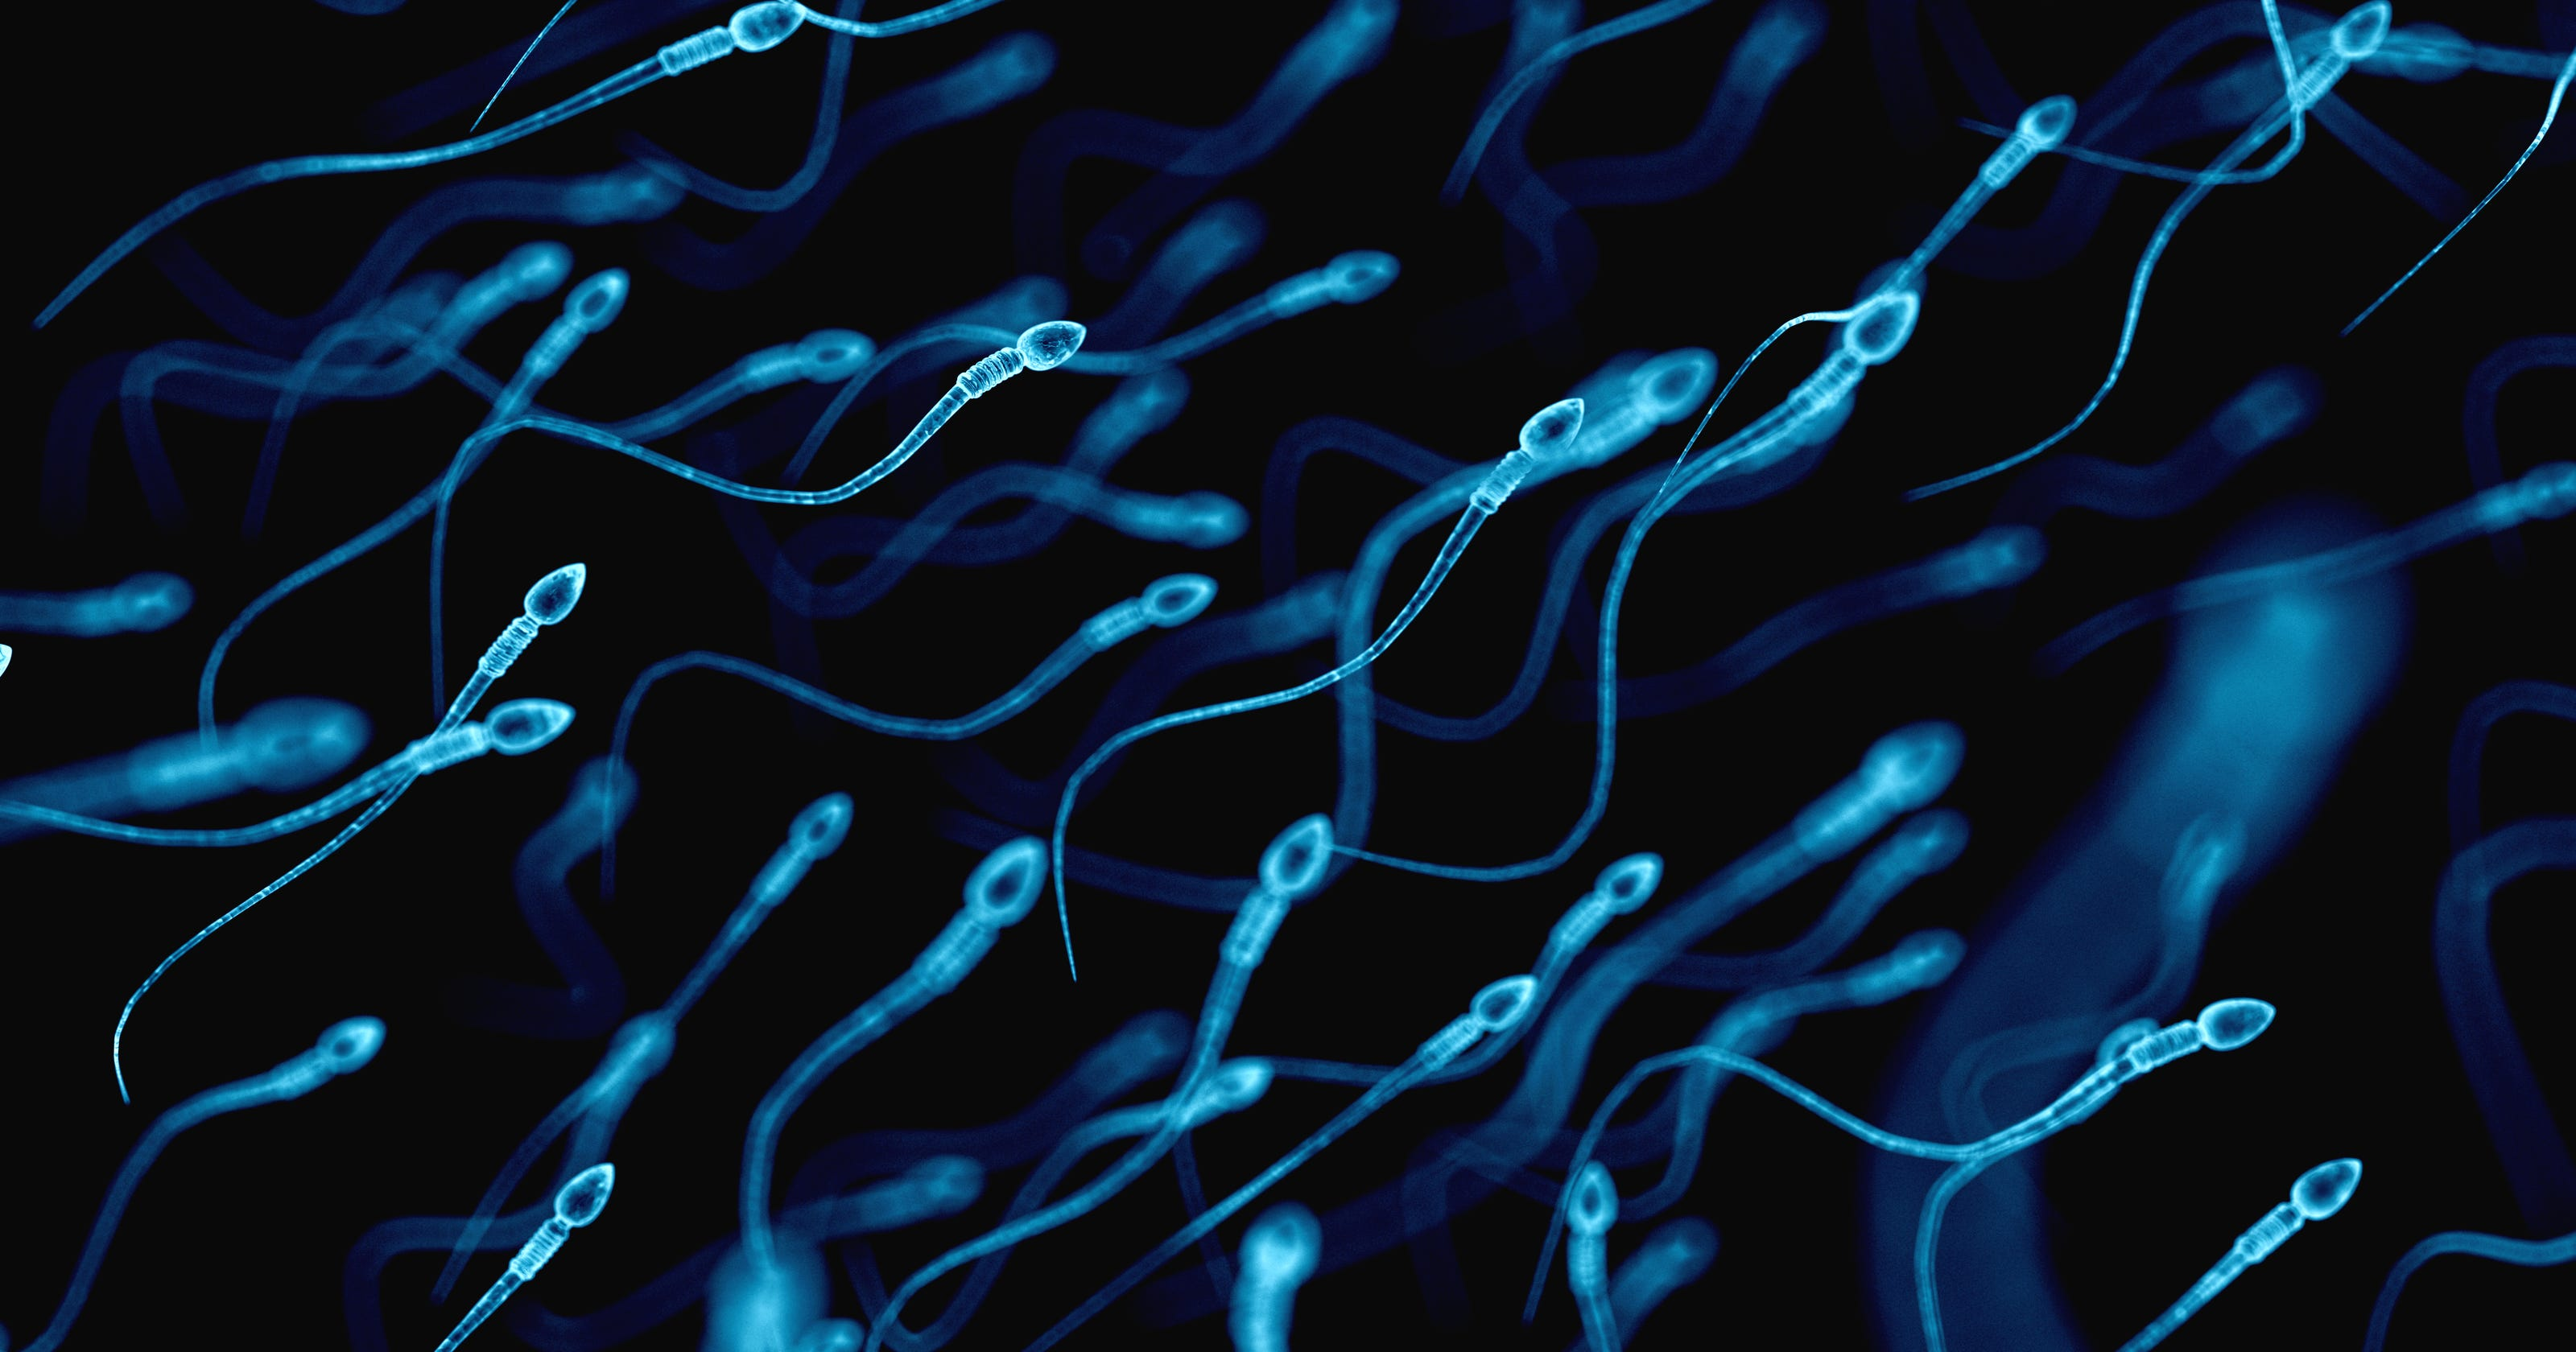 Add falling sperm counts to the list of things threatening human survival, epidemiologist warns - USA TODAY